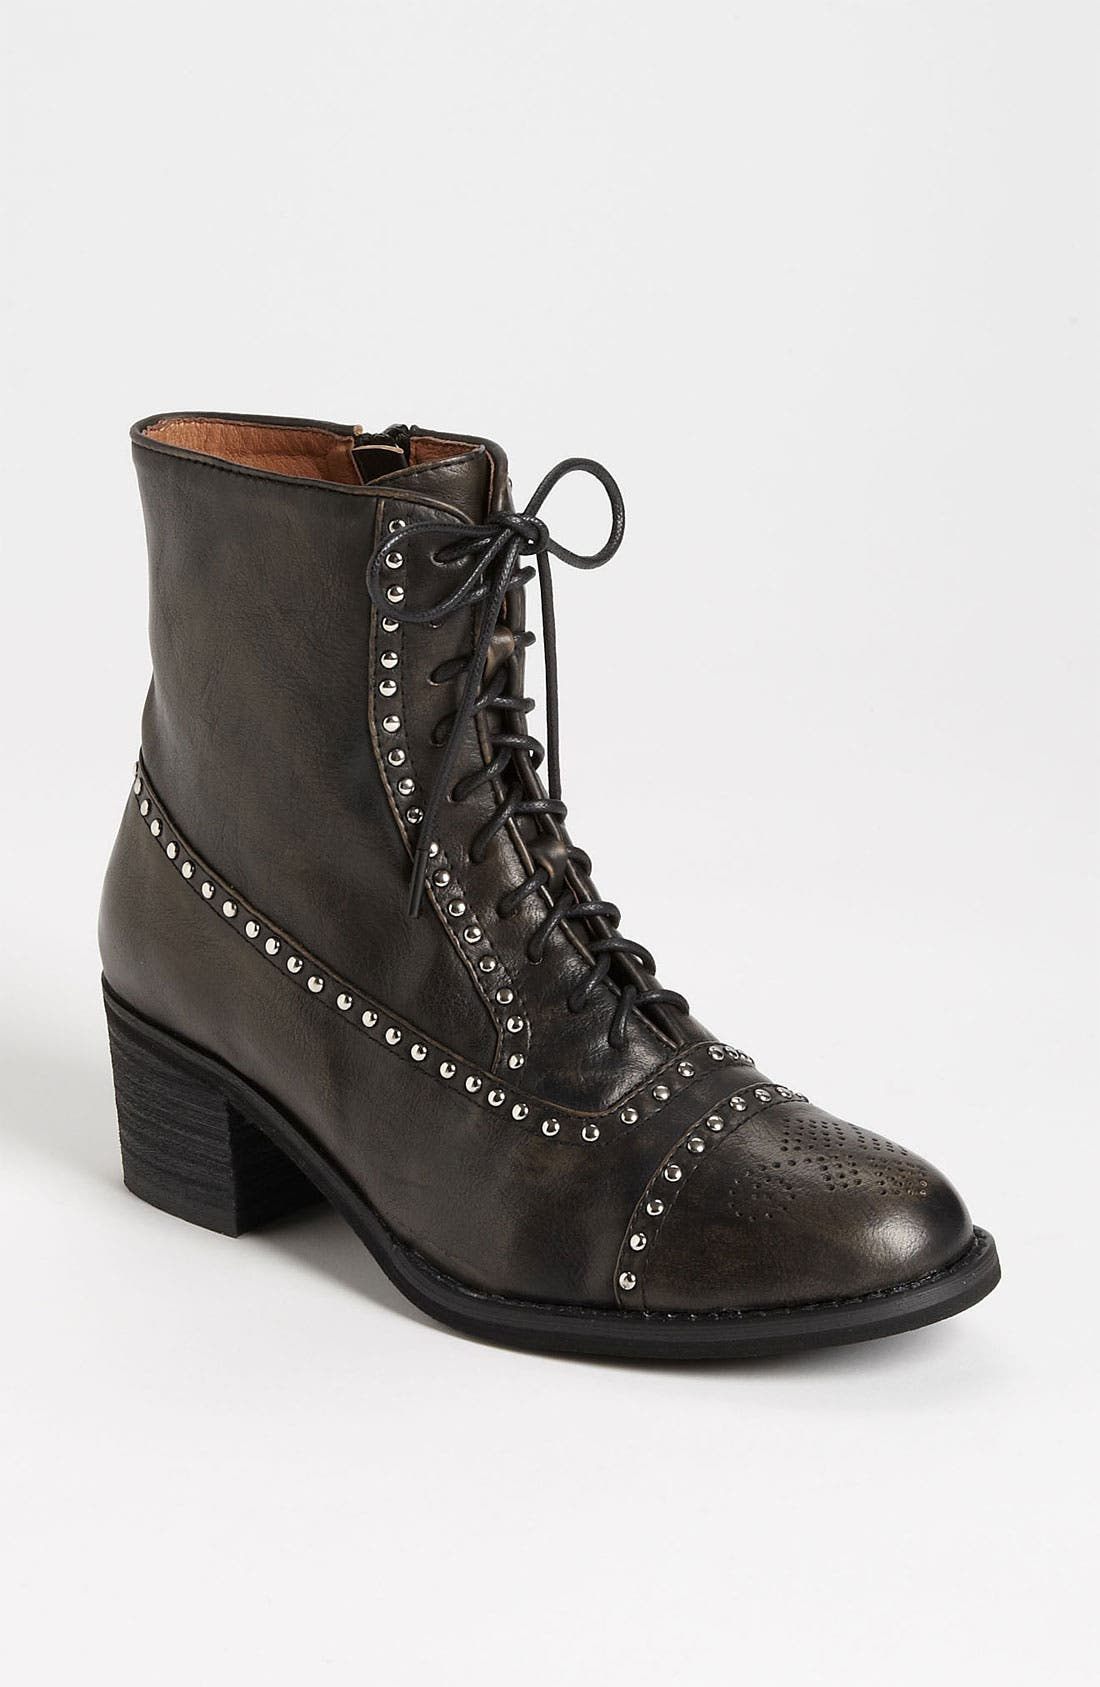 Alternate Image 1 Selected - Jeffrey Campbell 'Mattie' Boot